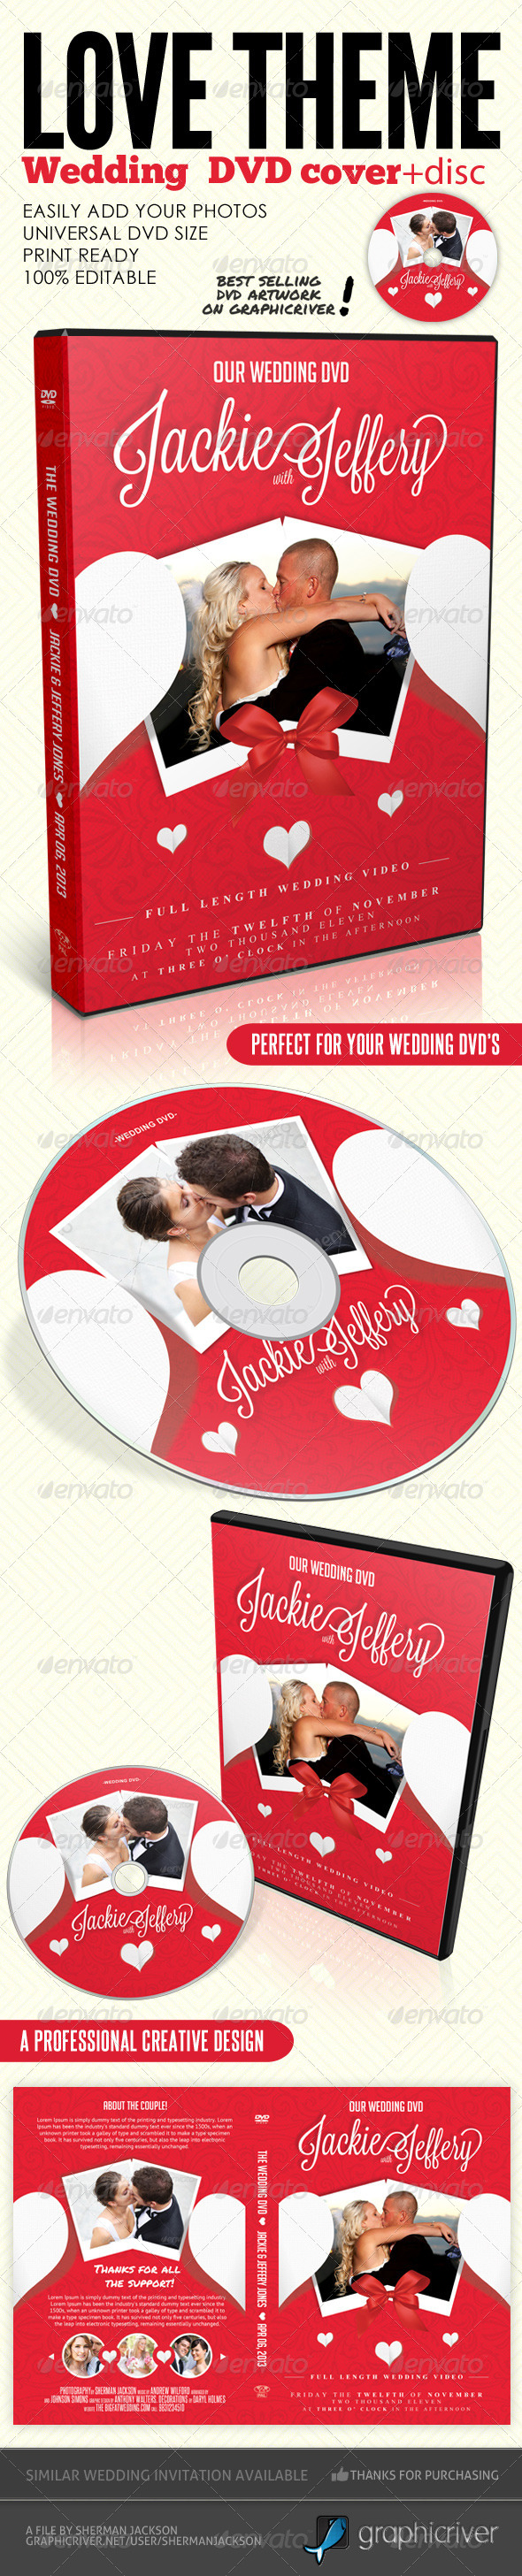 Love Theme Wedding DVD Covers & Disc Label - CD & DVD artwork Print Templates